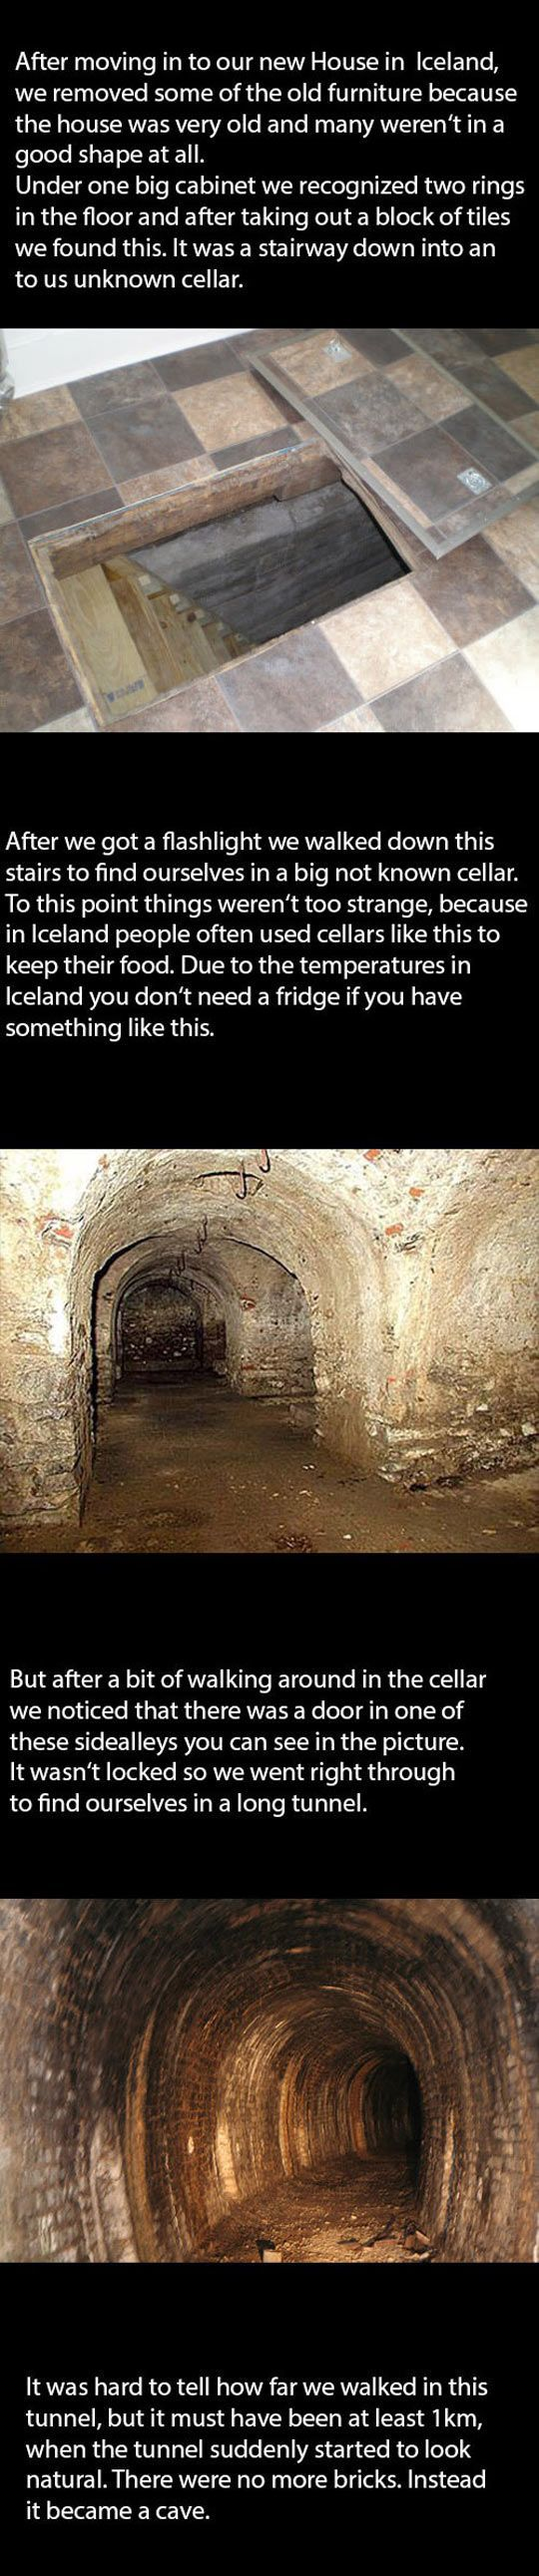 Secret Hidden Room In The New House - please click on link to get whole story, not everyone is sharing both parts